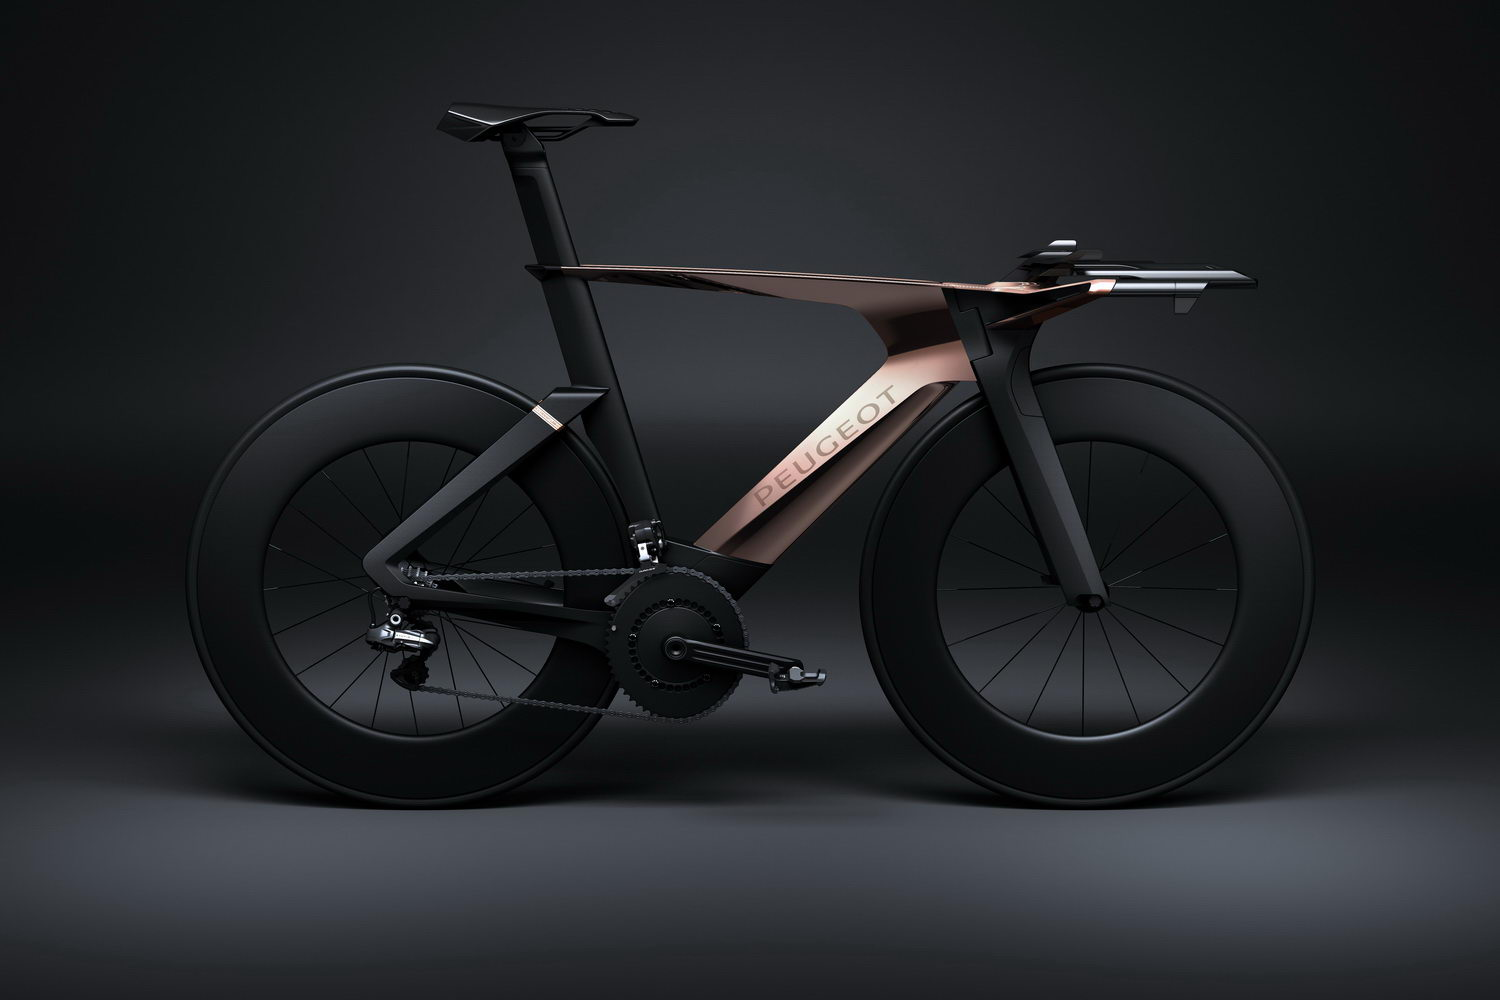 peugeot onyx superbike concept | transportation | peugeot design lab